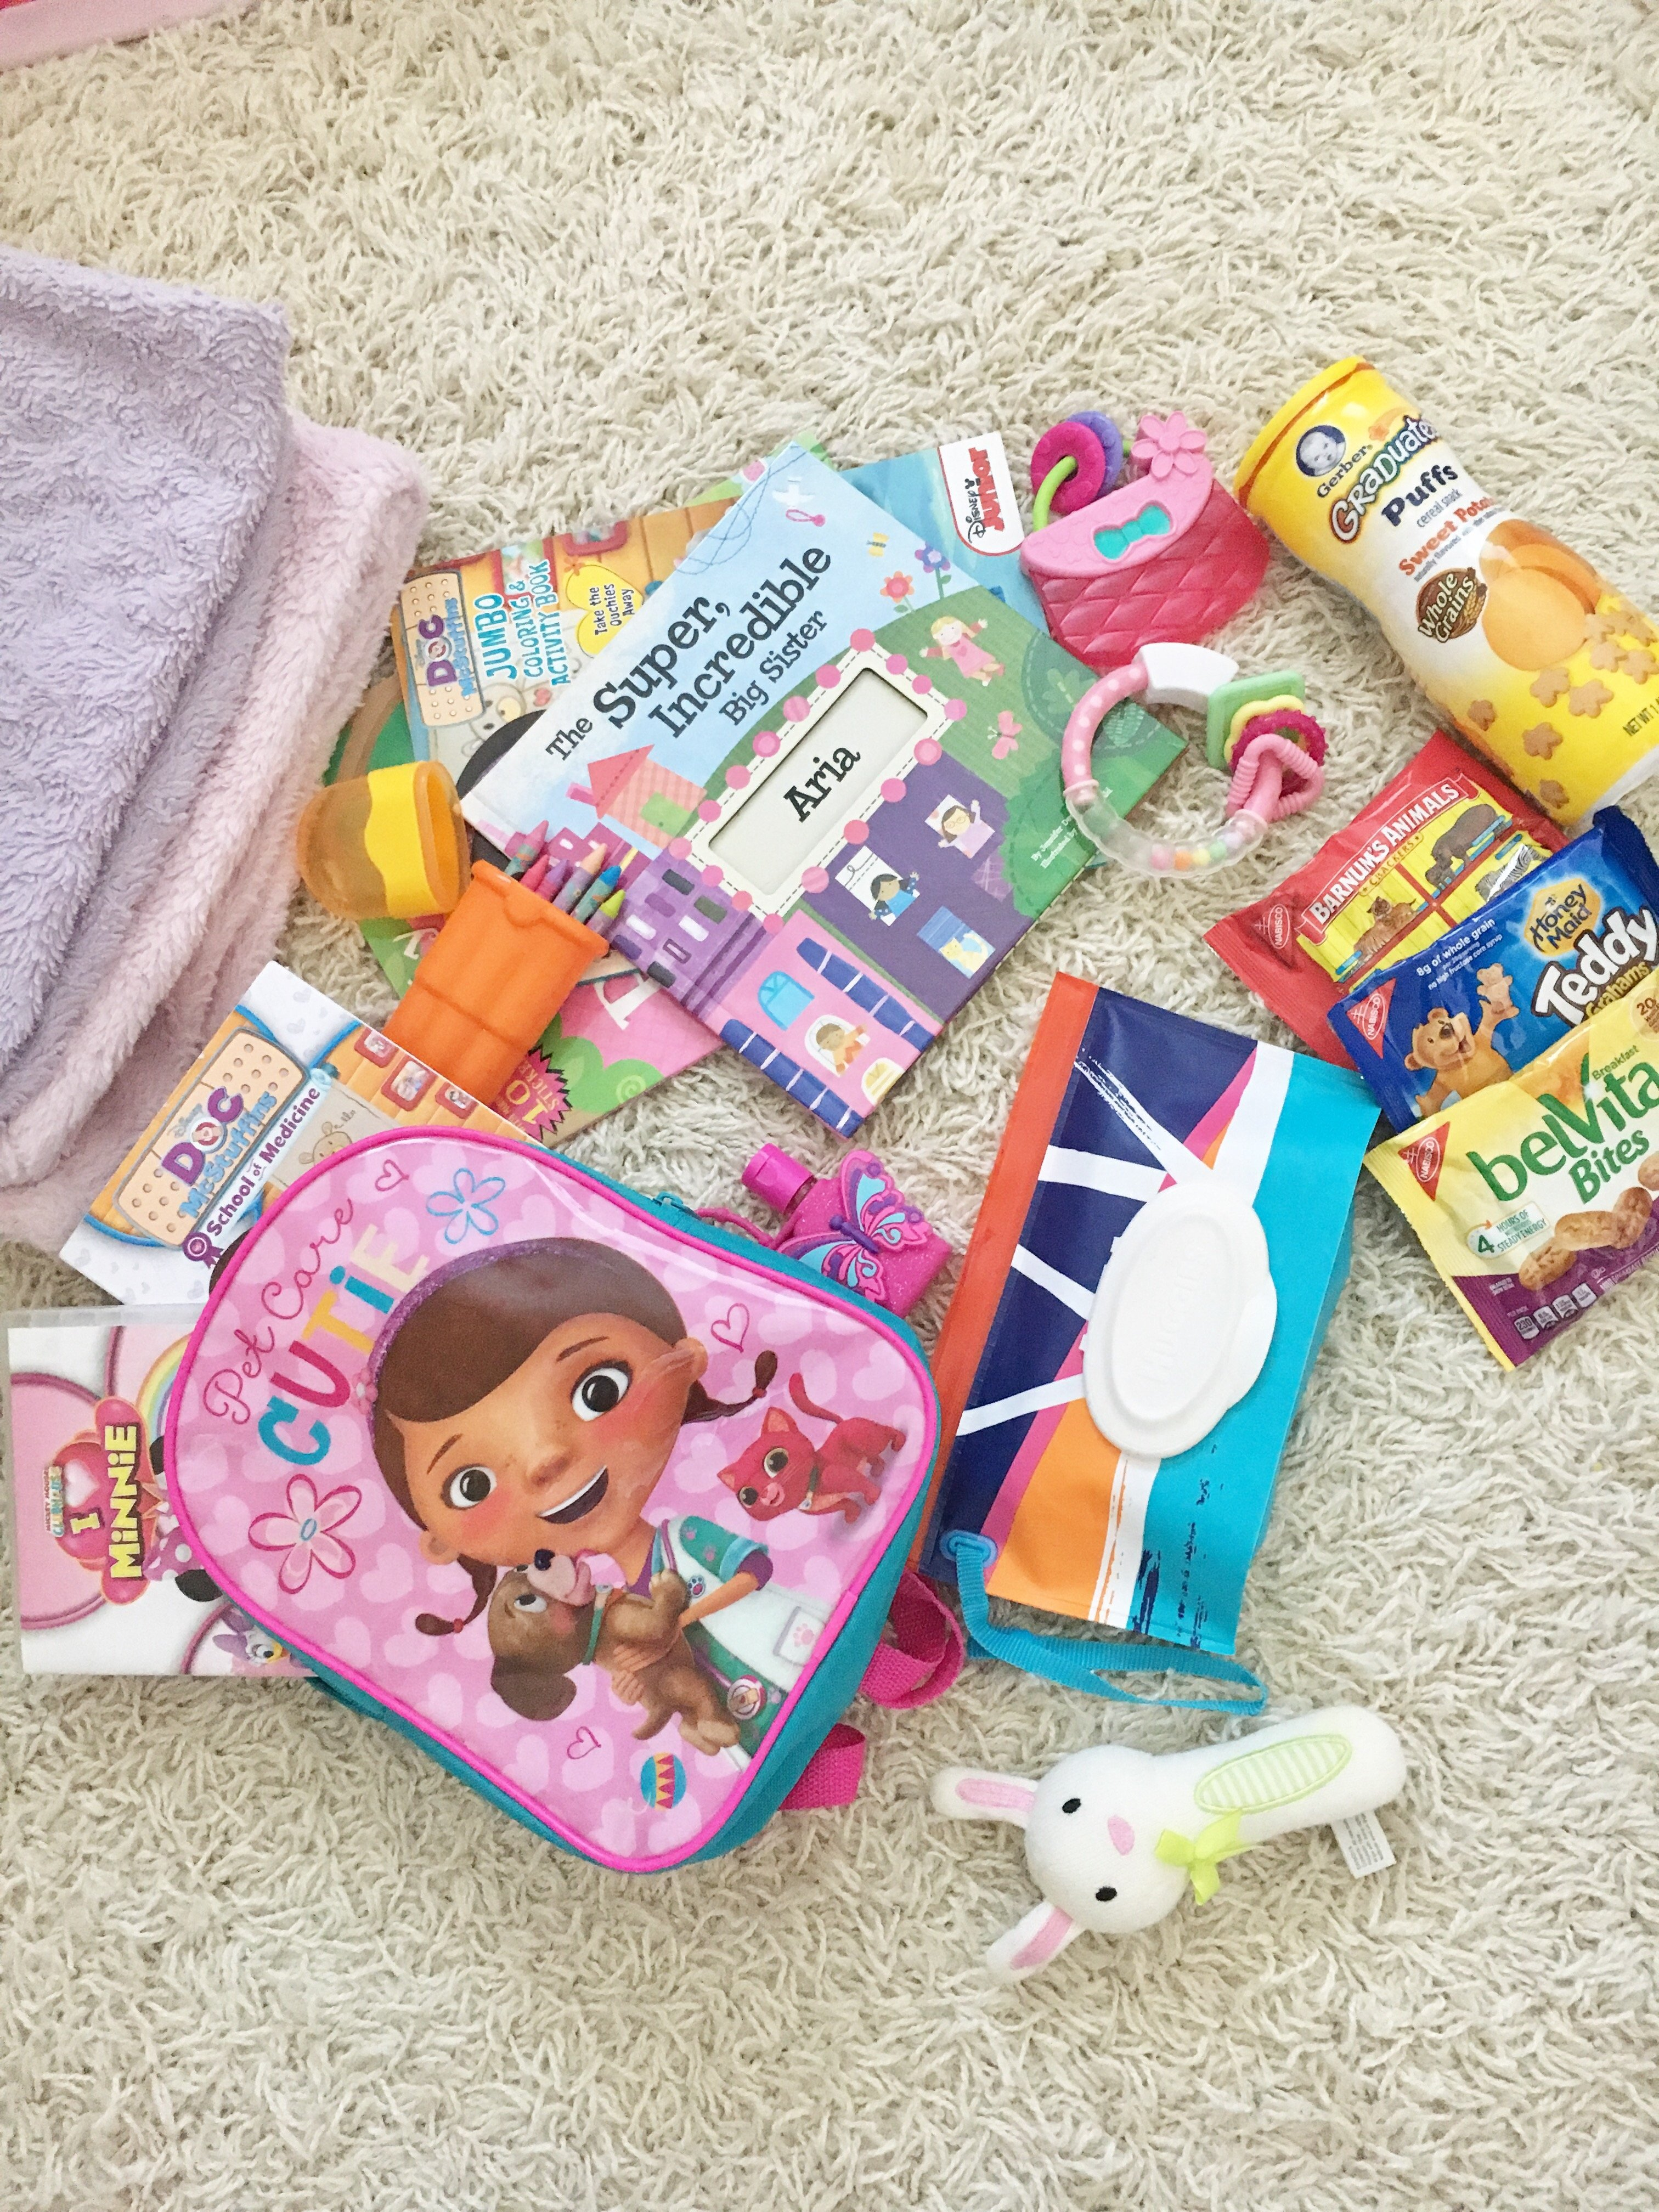 Traveling With Toddlers + Infants | Airplane travel with toddlers and infants | Travel tips with infants | Travel kit